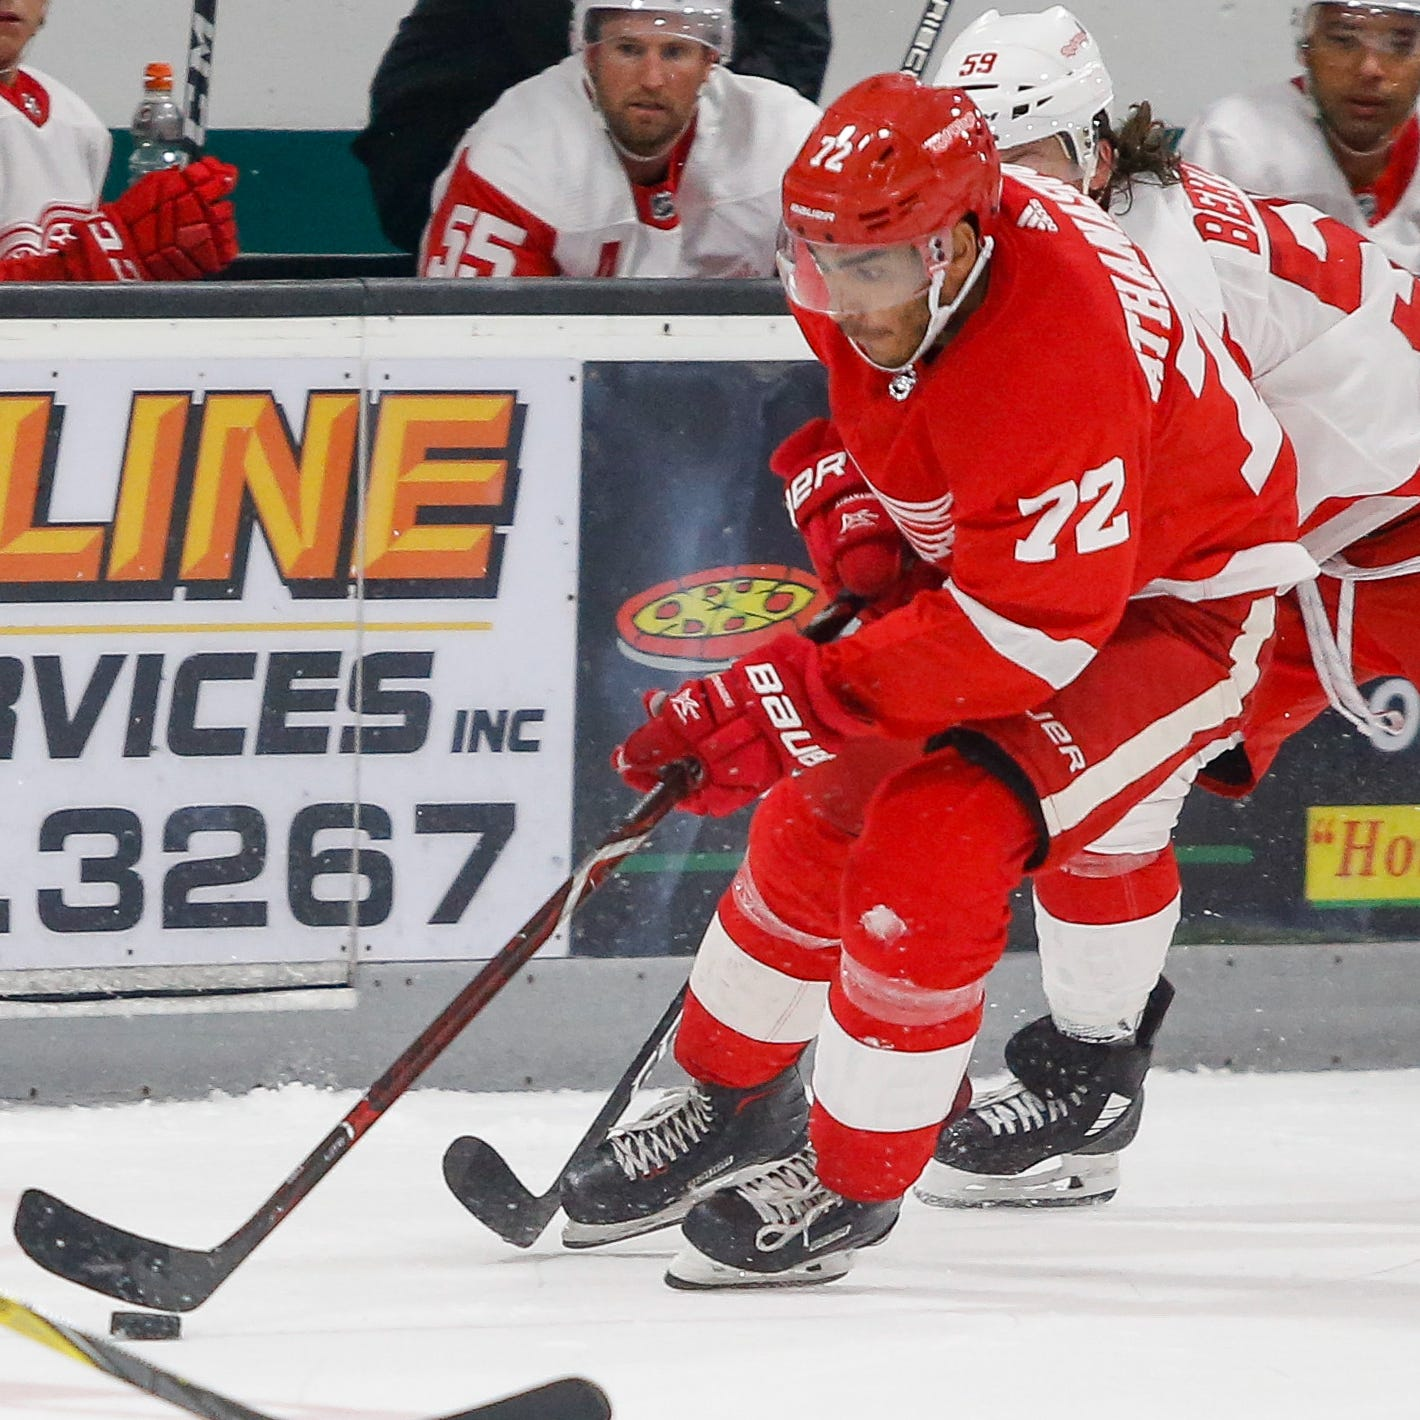 Krupa: A pivotal preseason begins for the Red Wings